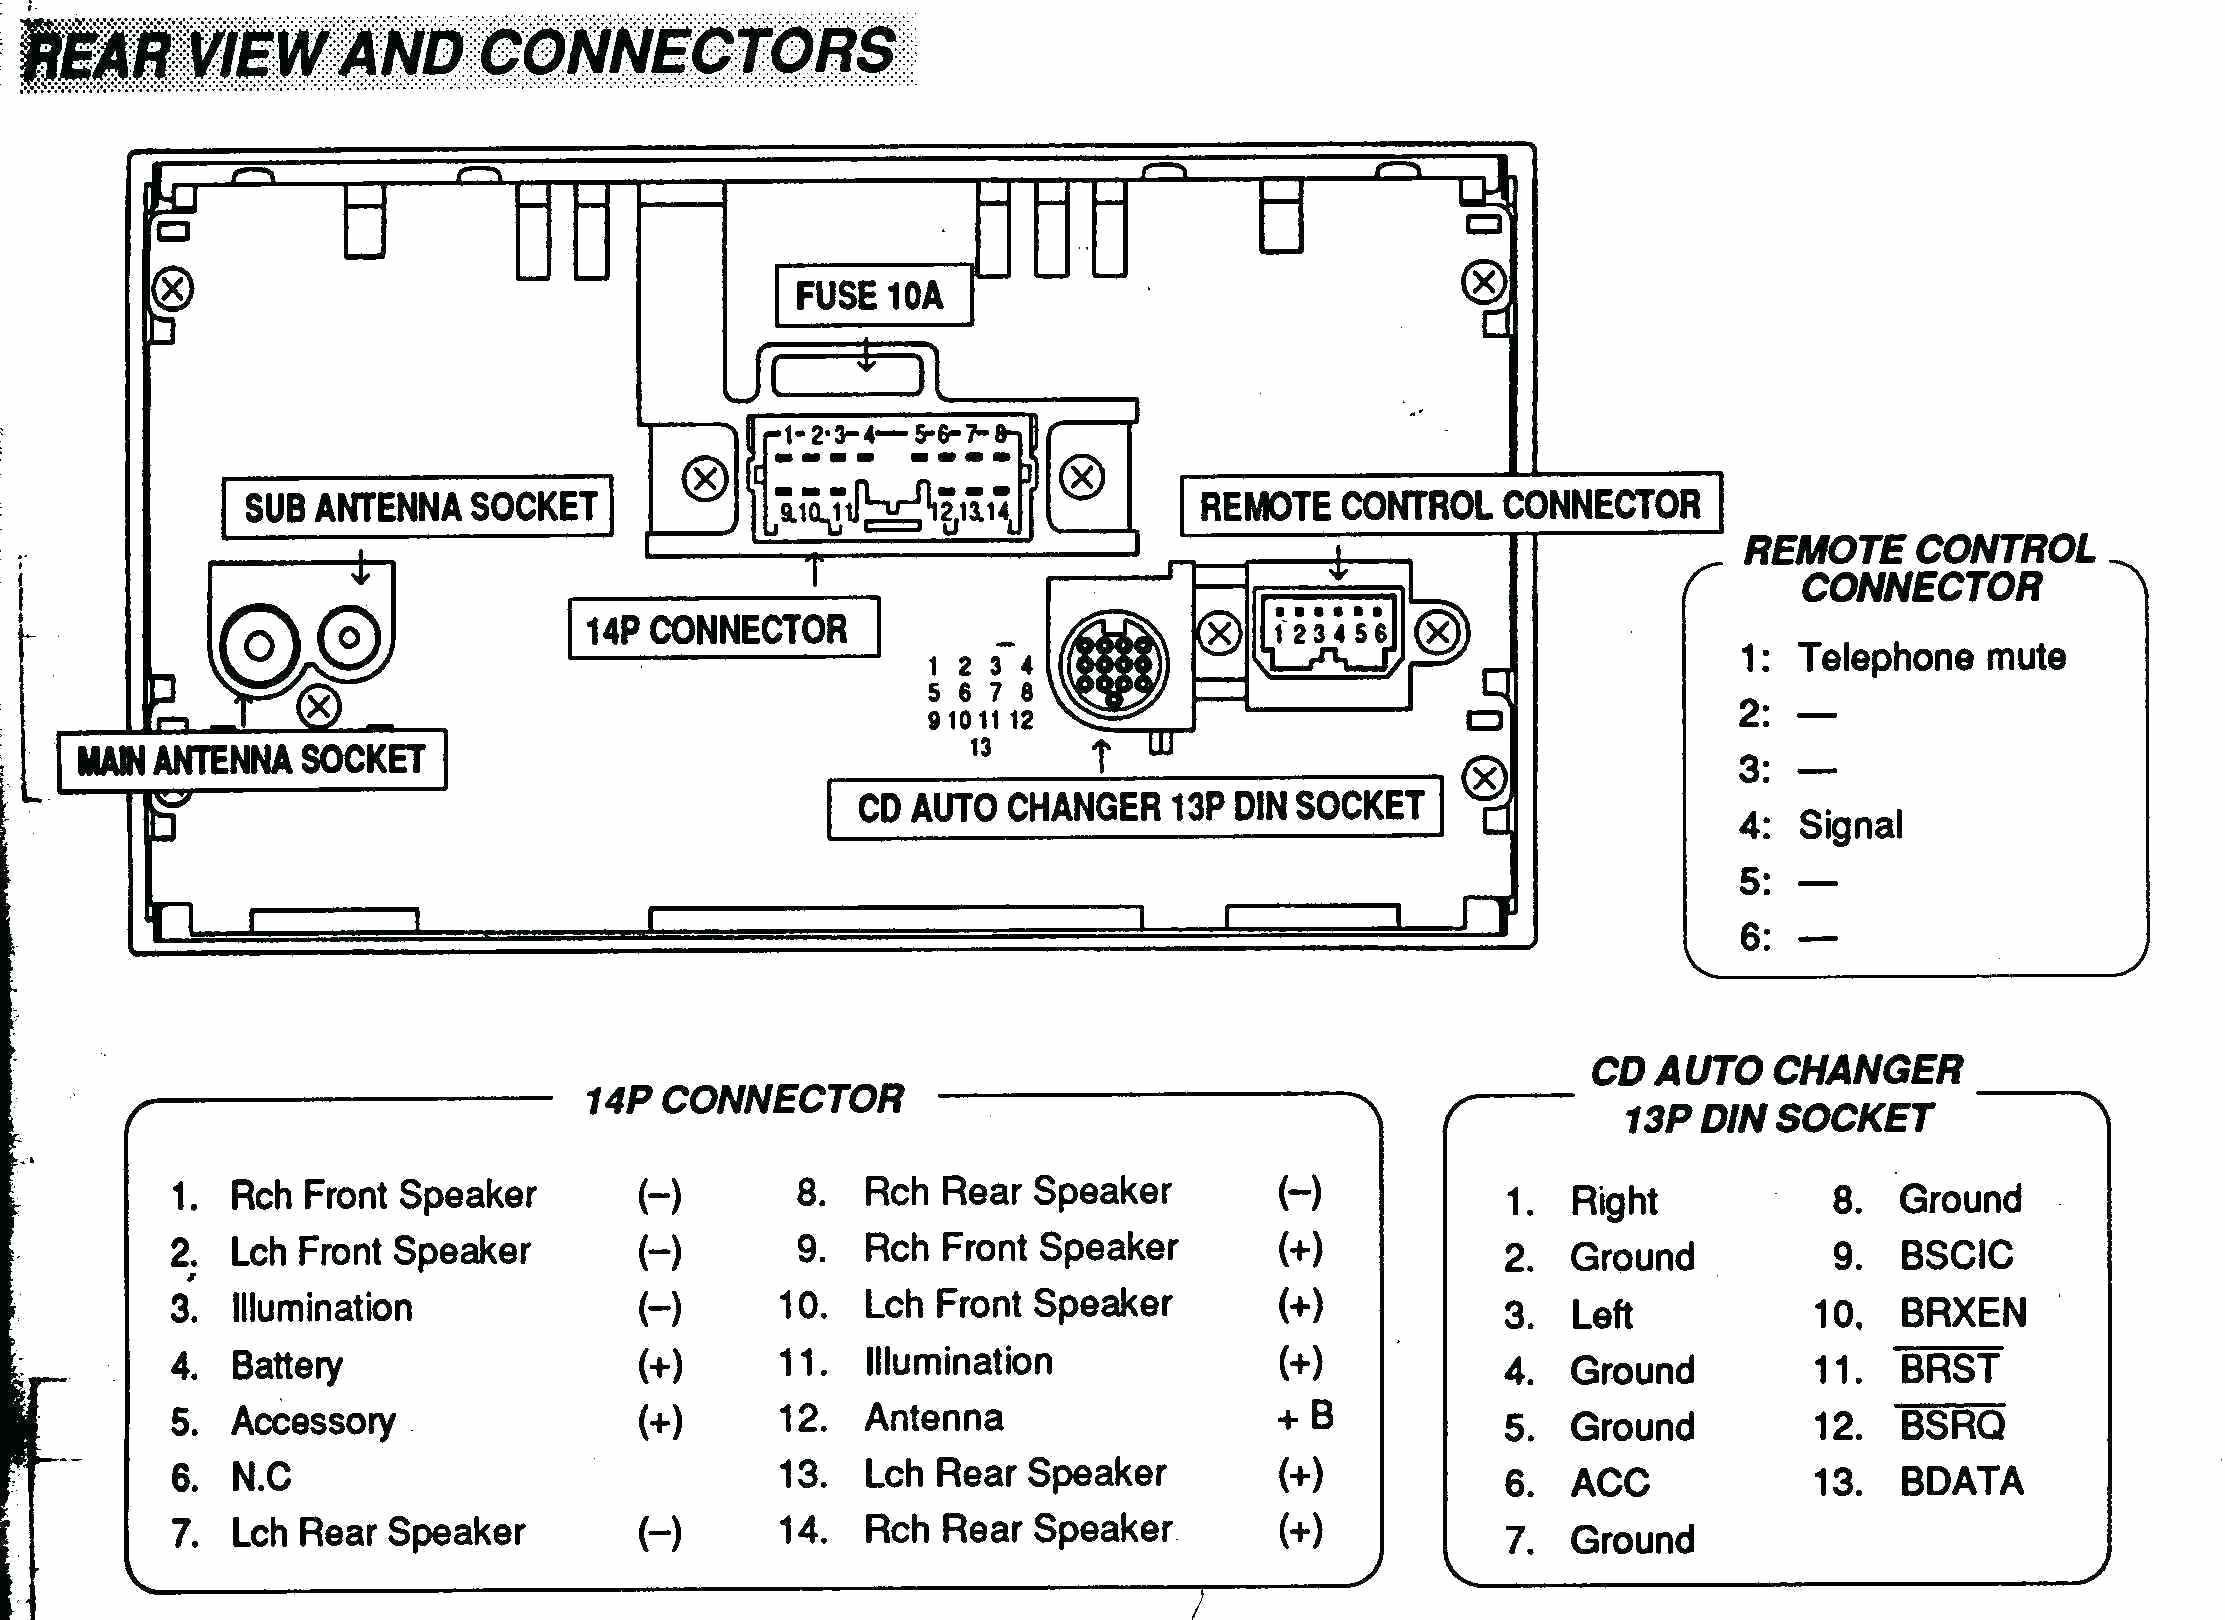 Kenwood Ddx370 Wiring Diagram Mitsubishi Cars Electrical Wiring Diagram Car Stereo